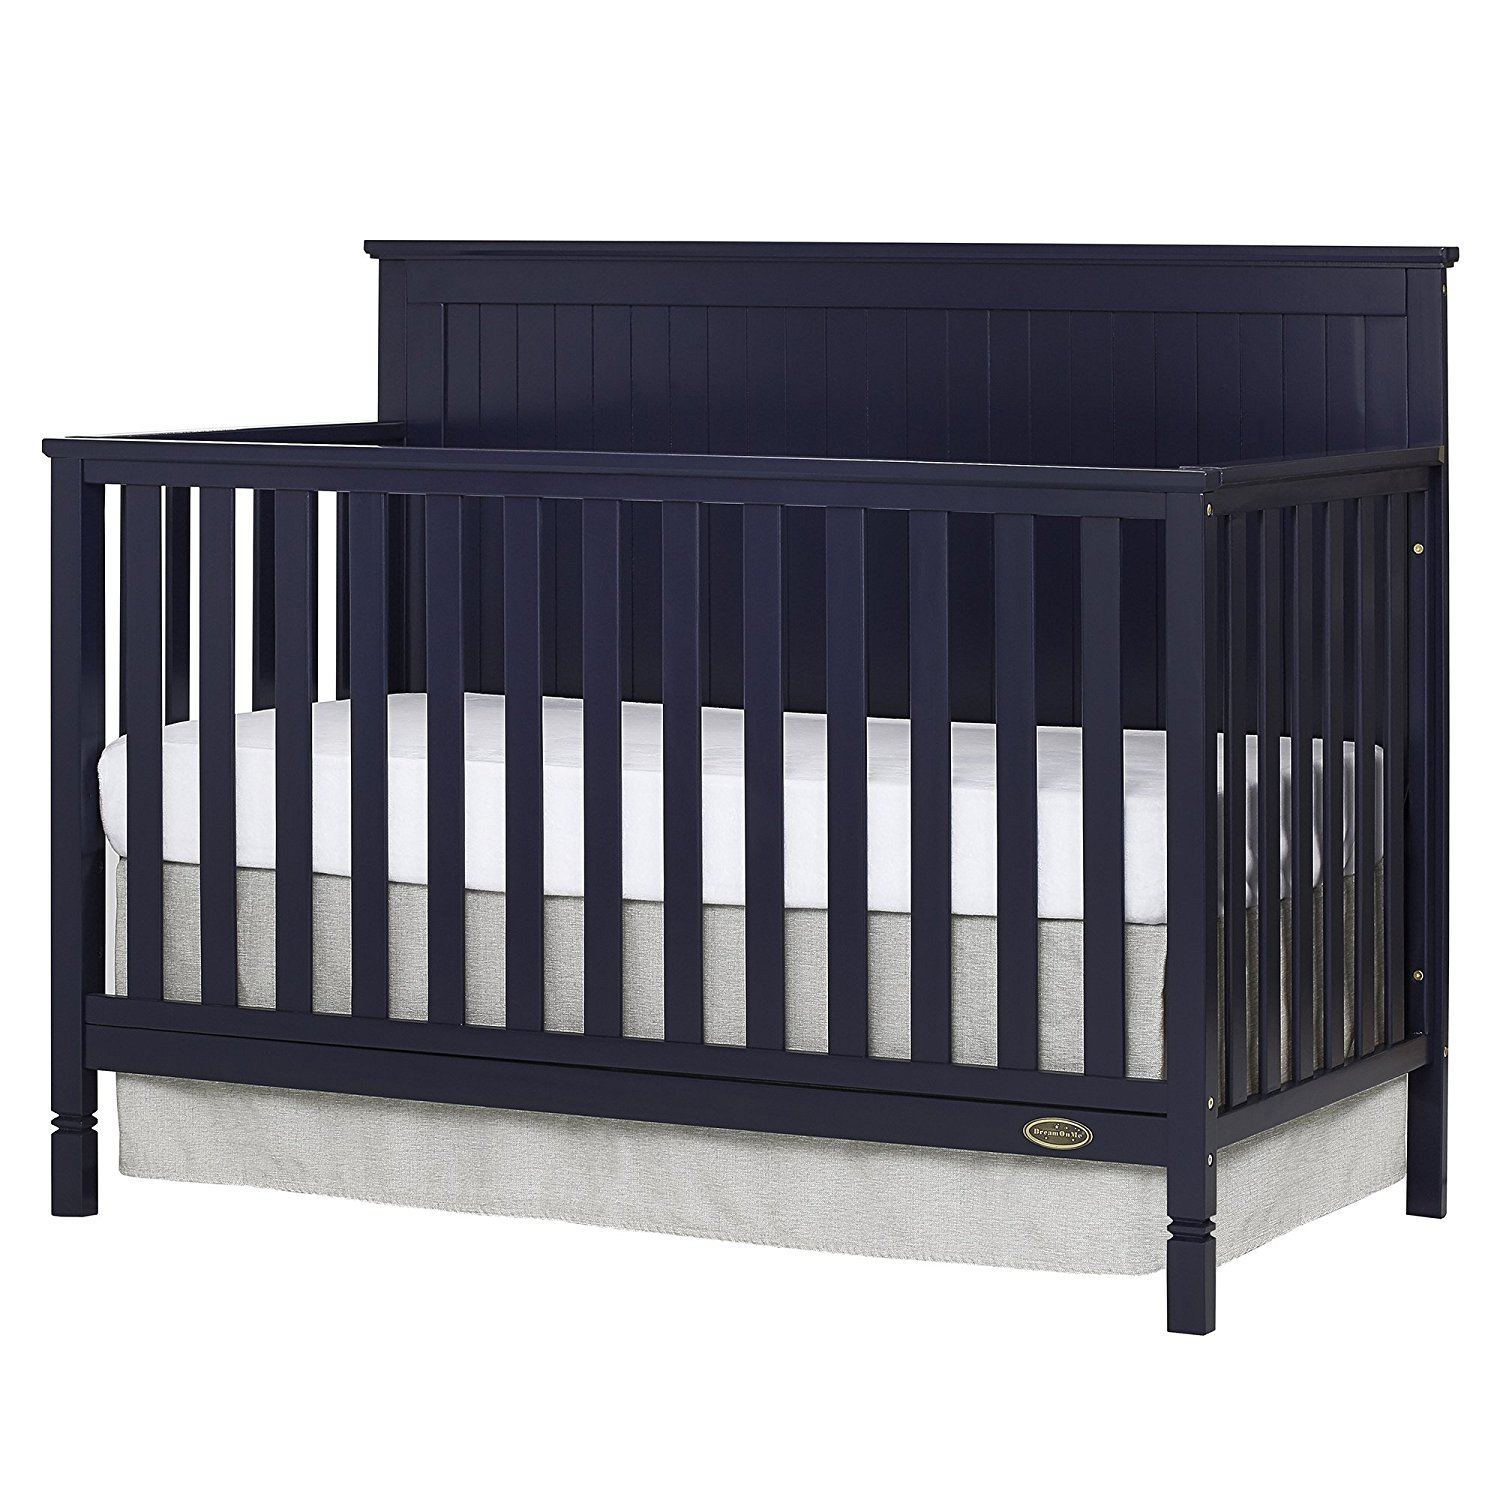 Best Nursery Collections with Restoration Hardware Cribs Design: Fancy Baby Cribs | Restoration Hardware Cribs | Cheap Convertible Cribs